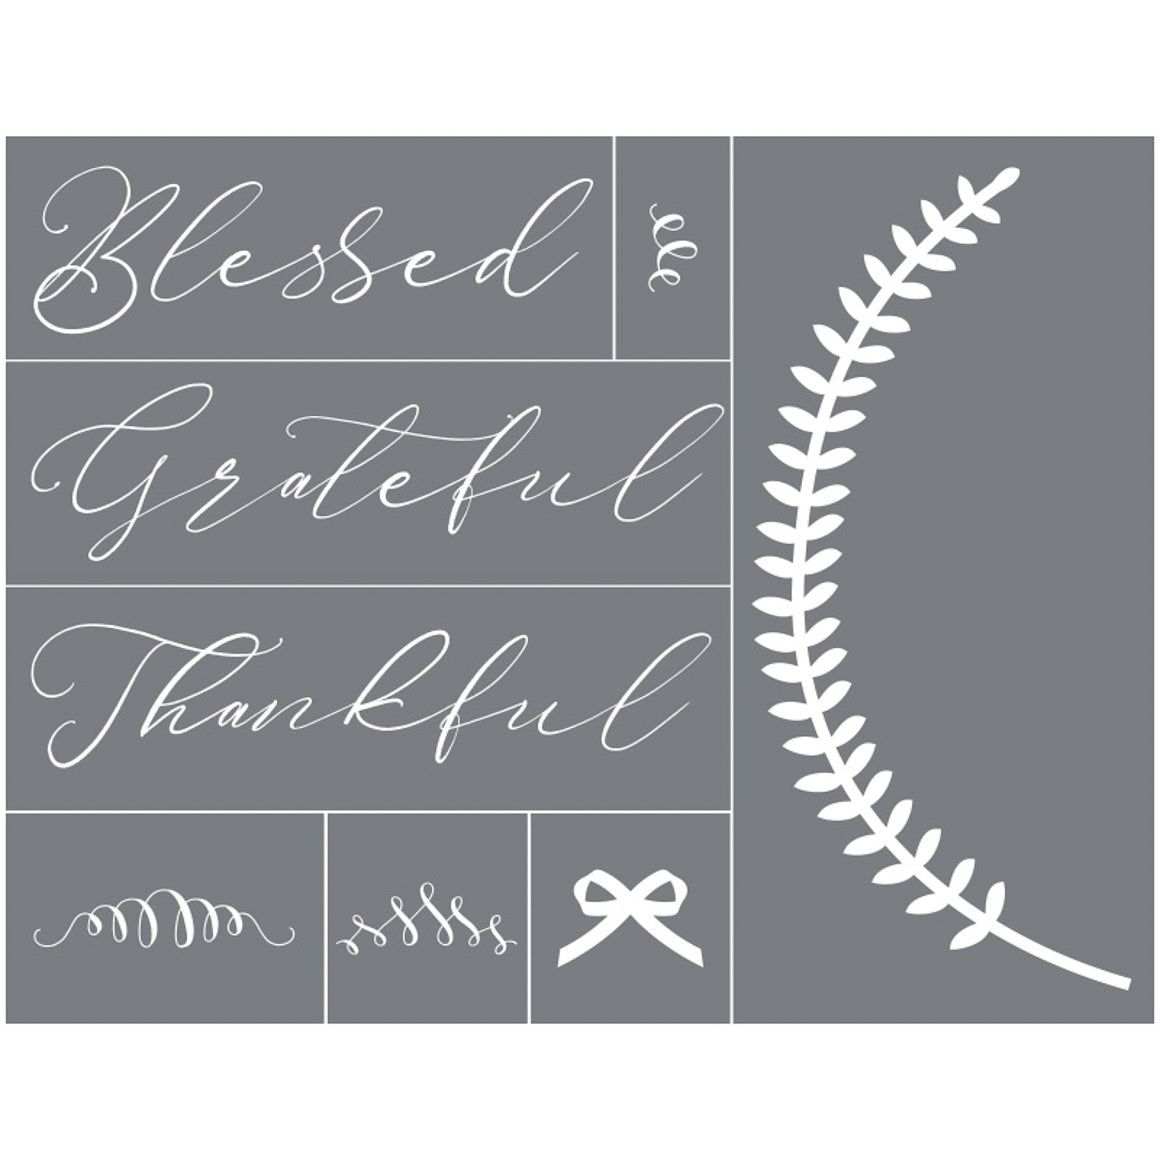 Mesh Stencil - Blessed Grateful Thankful - 8.5x11